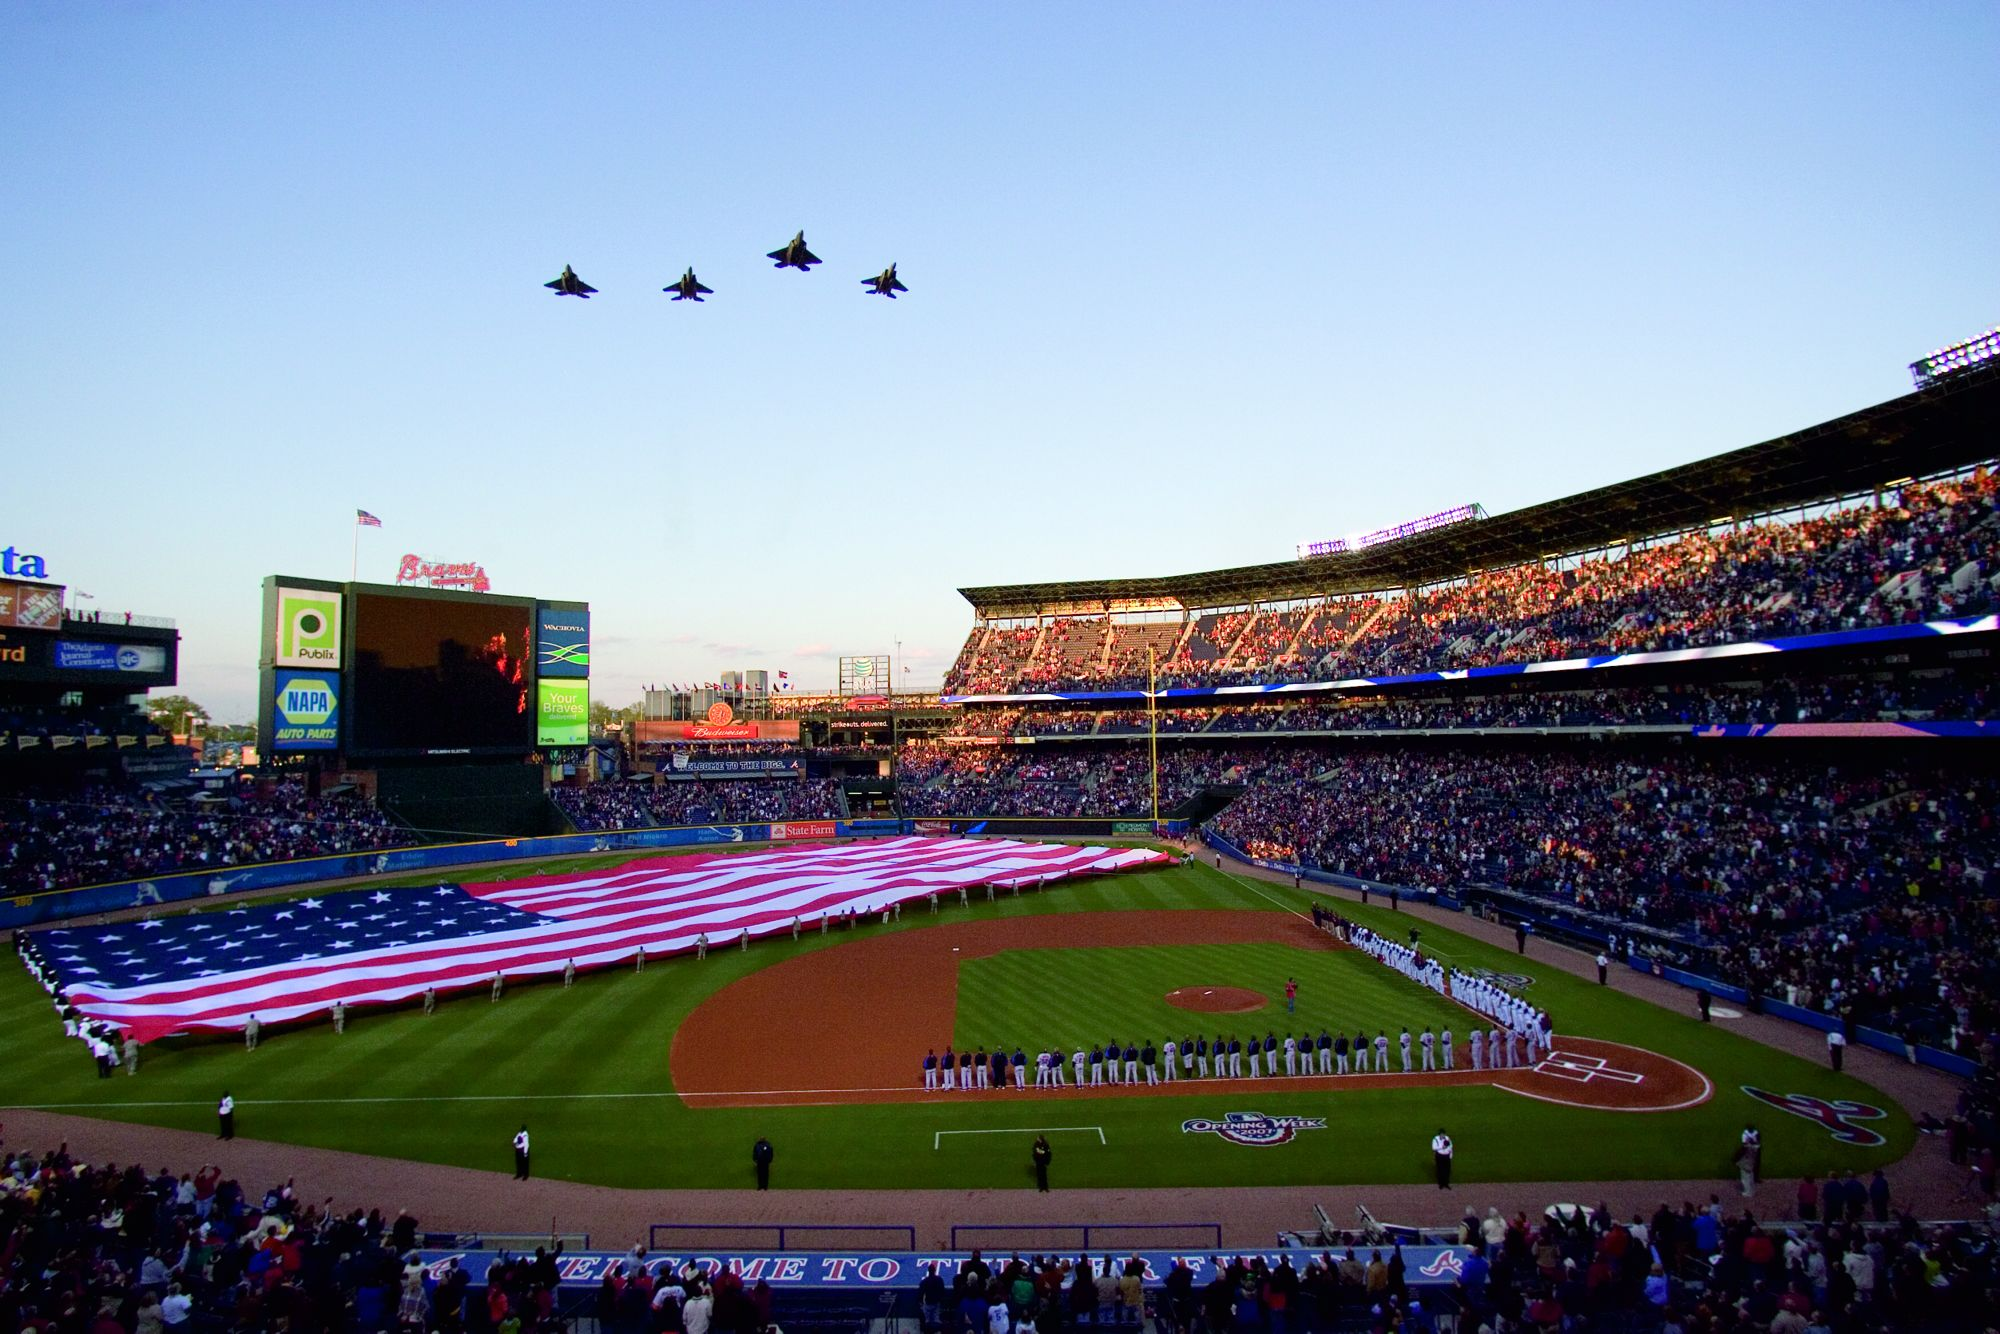 Jets fly over a baseball field where a large American flag is being unfurled